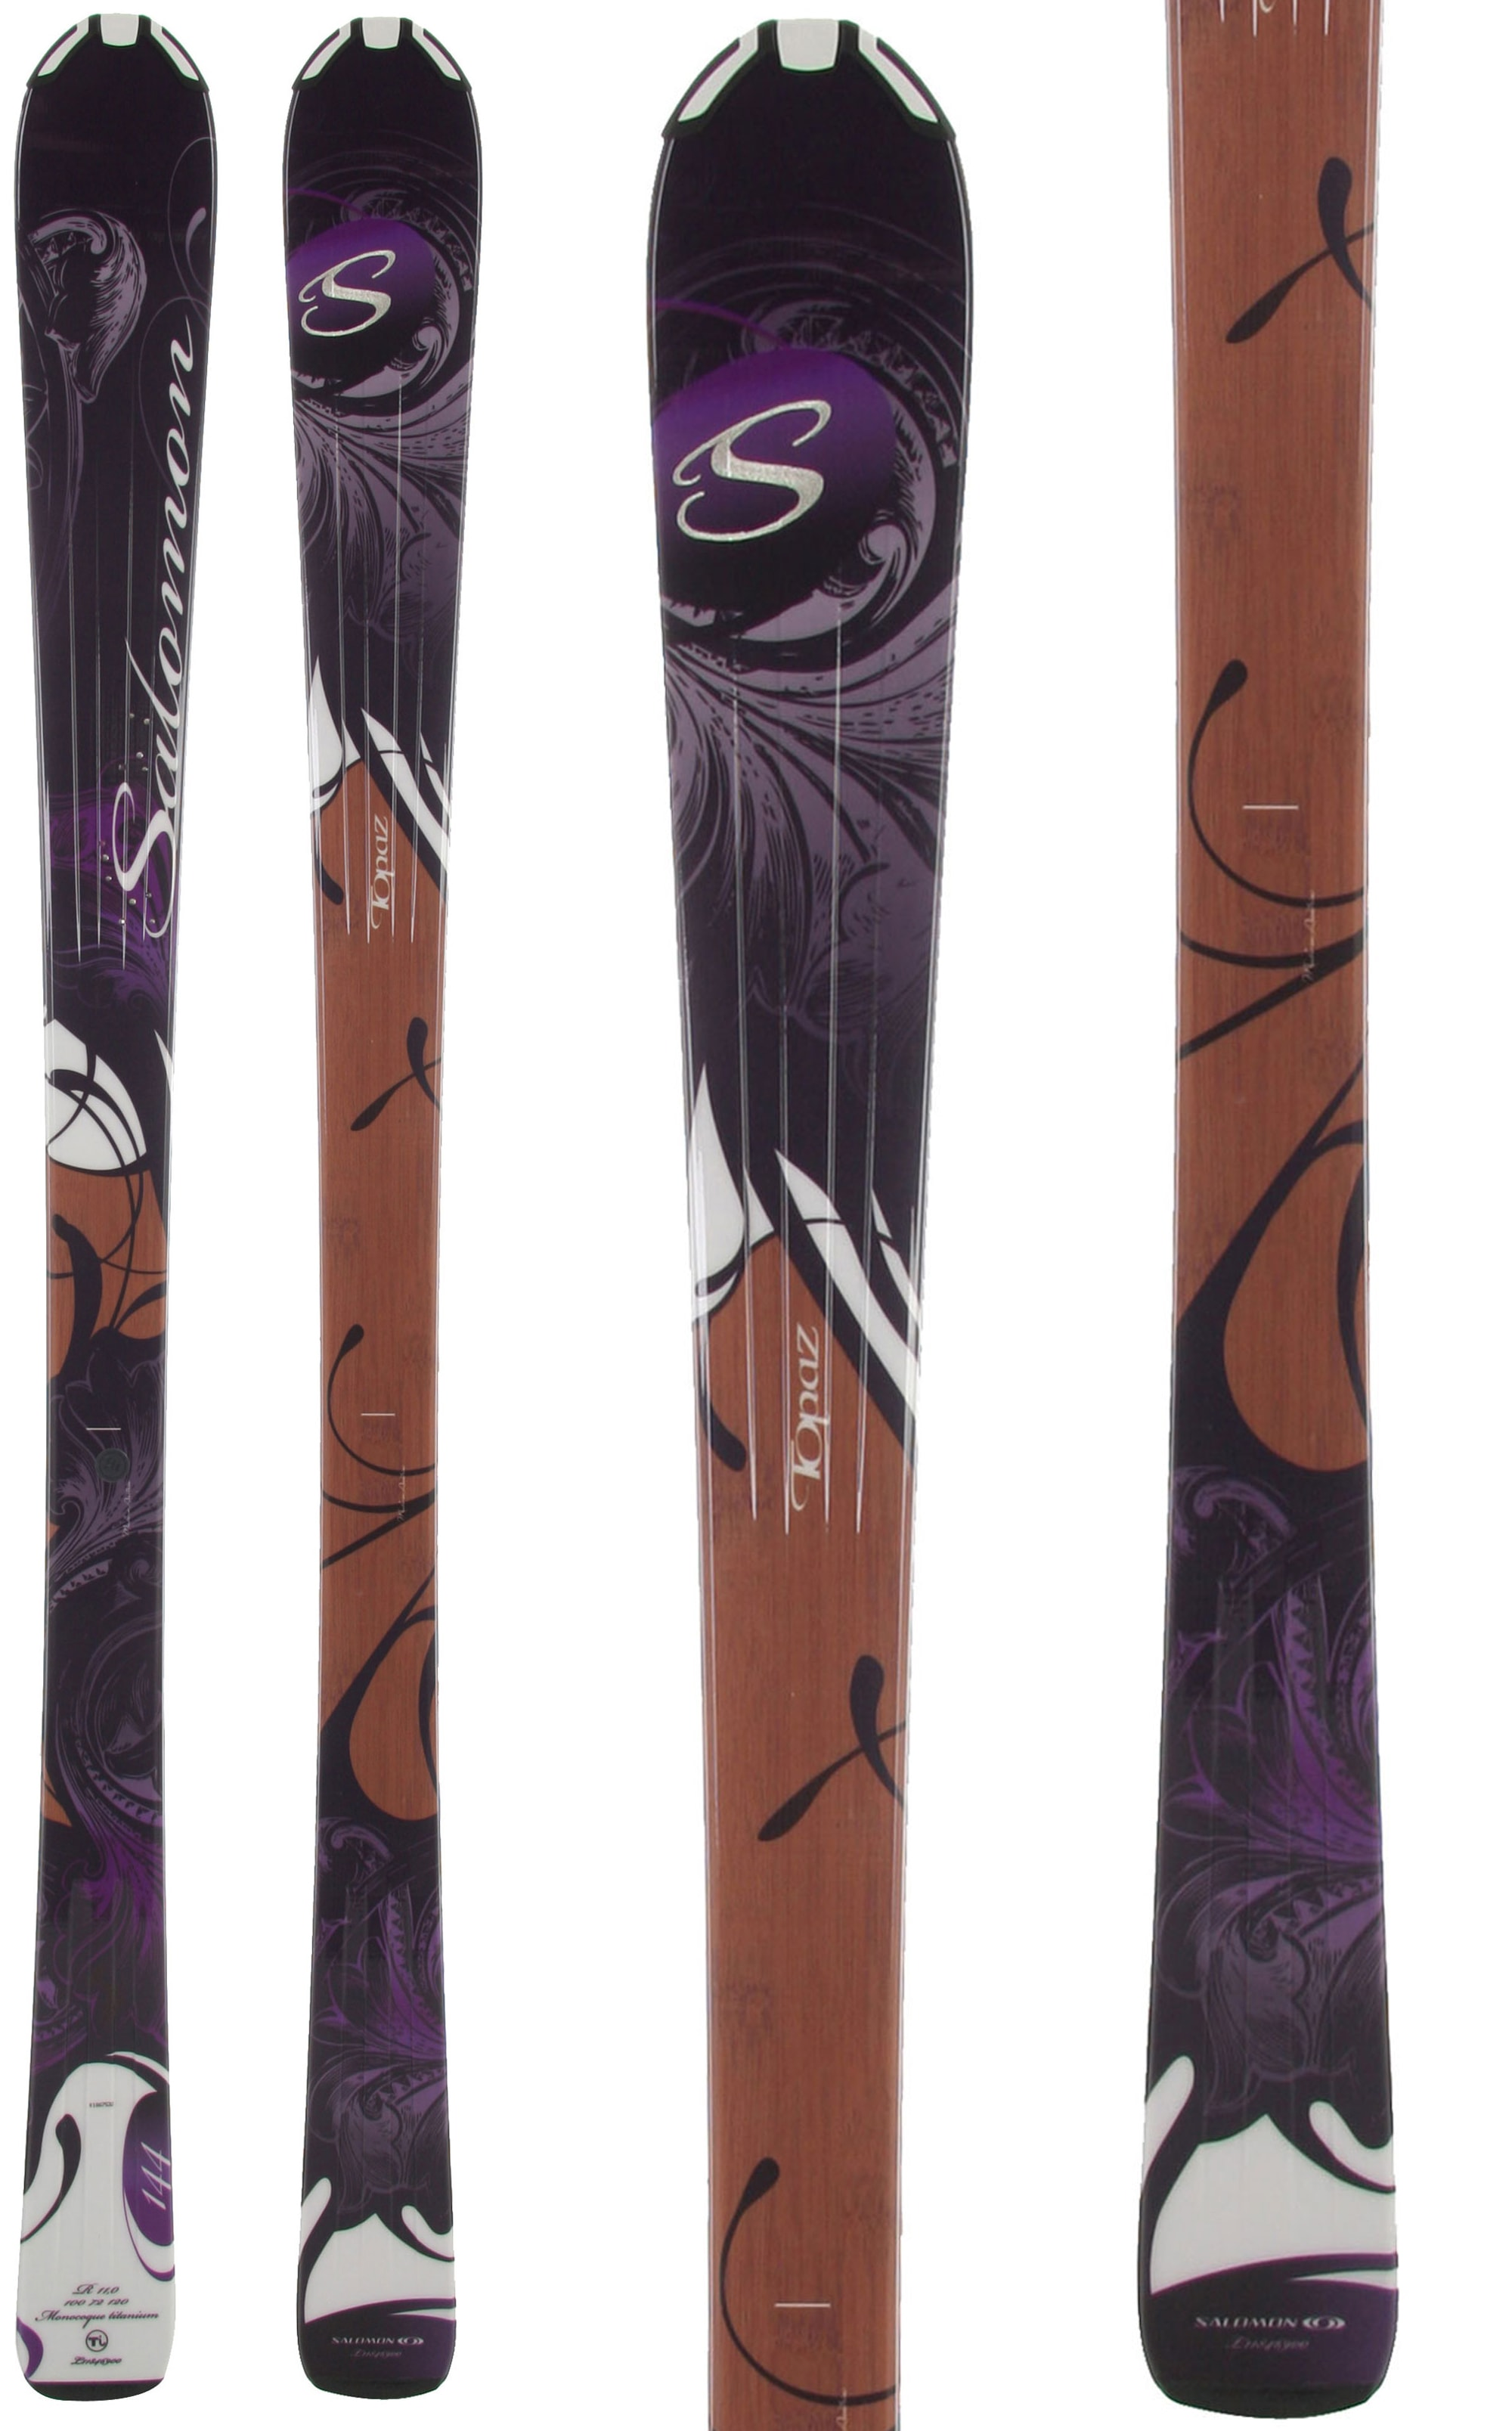 Shop for Salomon Origins Topaz Skis Black/Brown - Women's